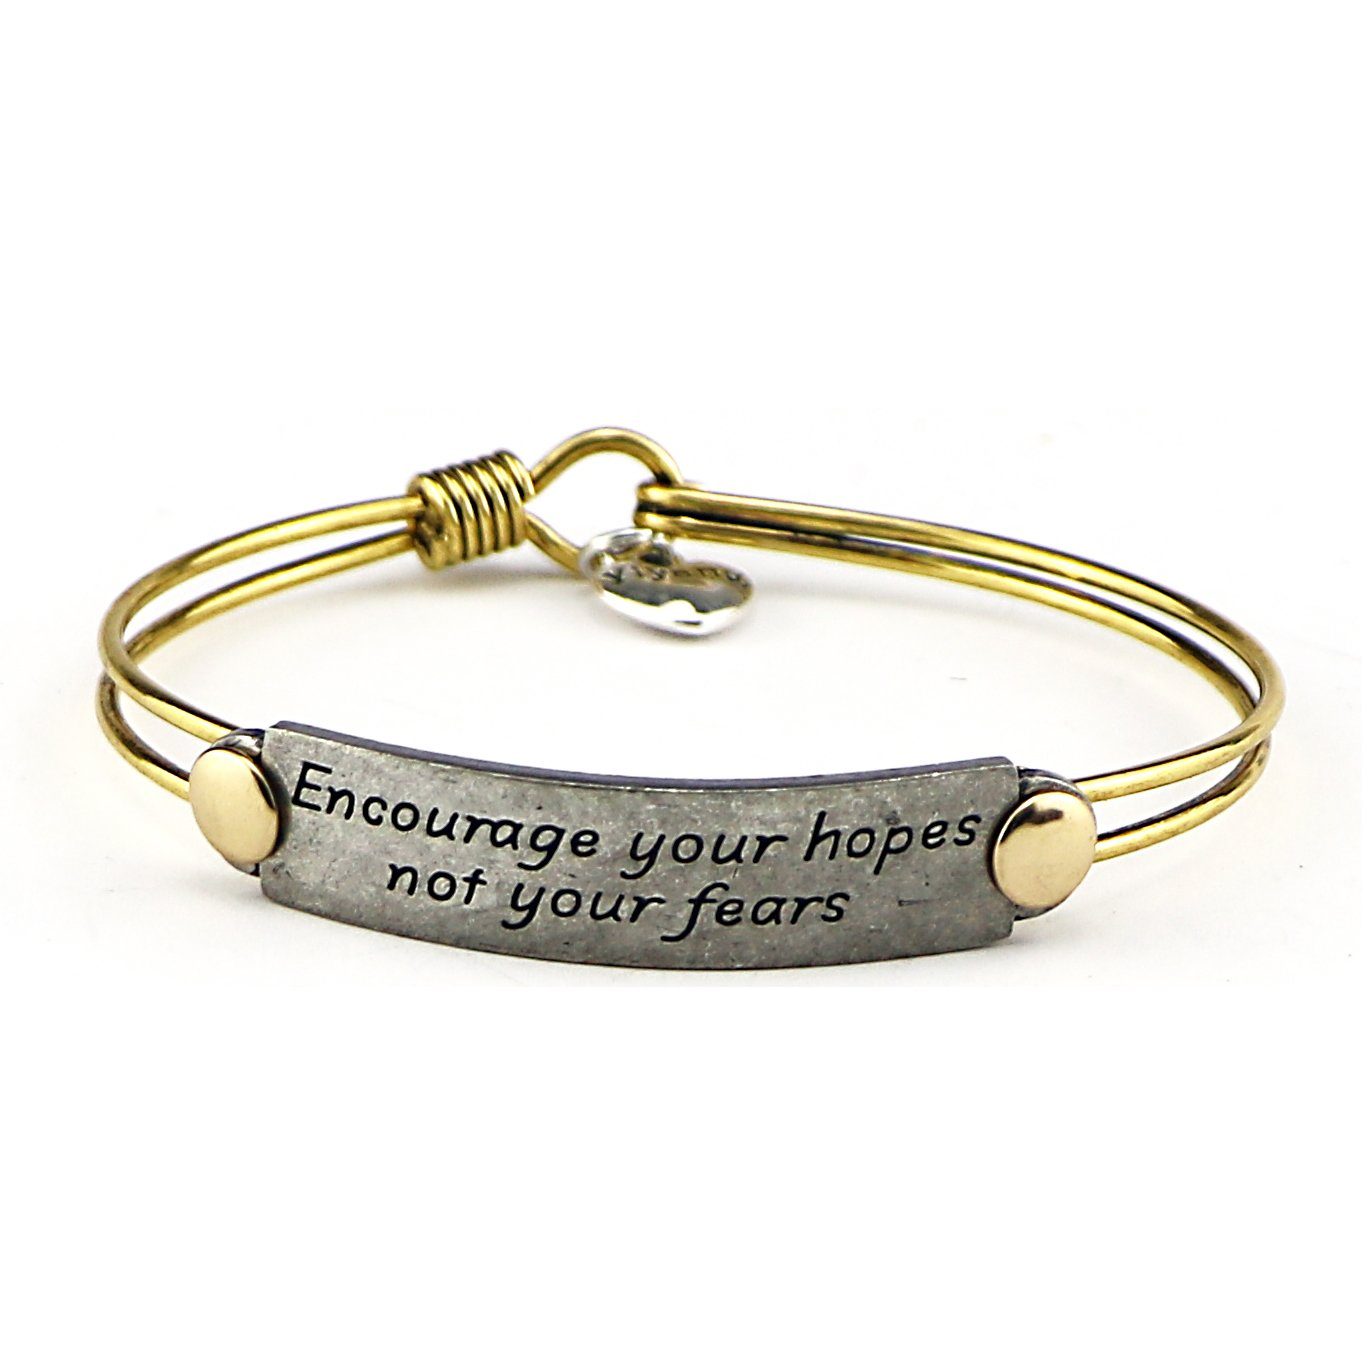 Inspirational Friendship Handmade Vintage Antique Brass Wire Bangle Bracelet Jewelry Gift Quotes Mantra Saying by Yiyang